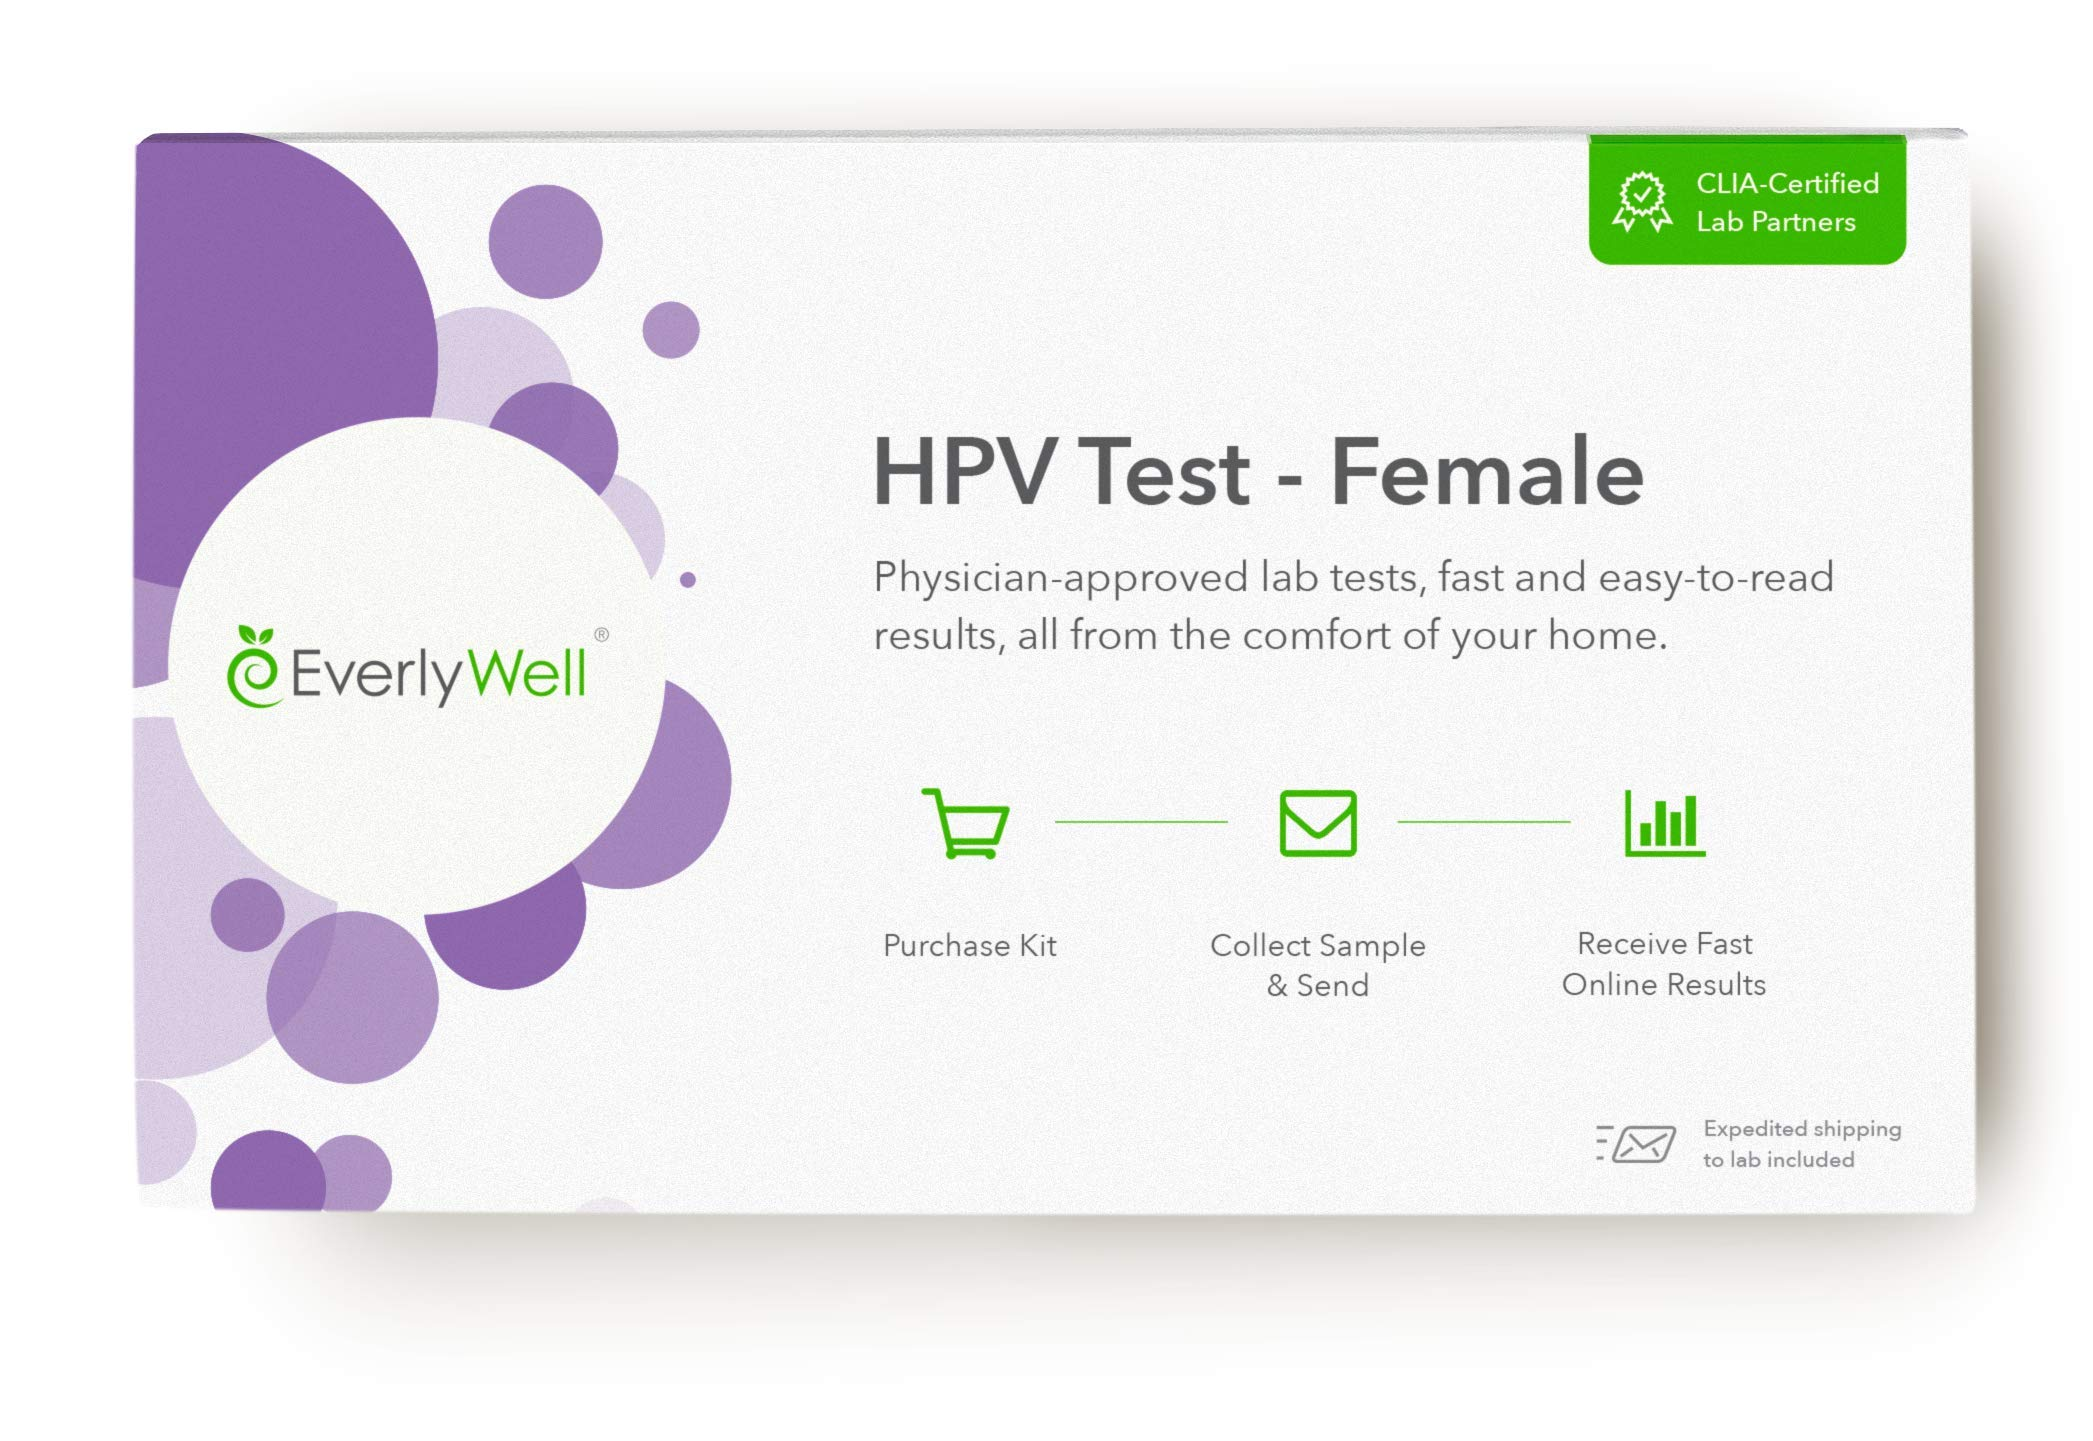 Everlywell - Female at-Home HPV Test - Physician Approved Lab Tests from The Comfort of Your Home (Not Available in MD, NY, NJ, RI) by Everly Well